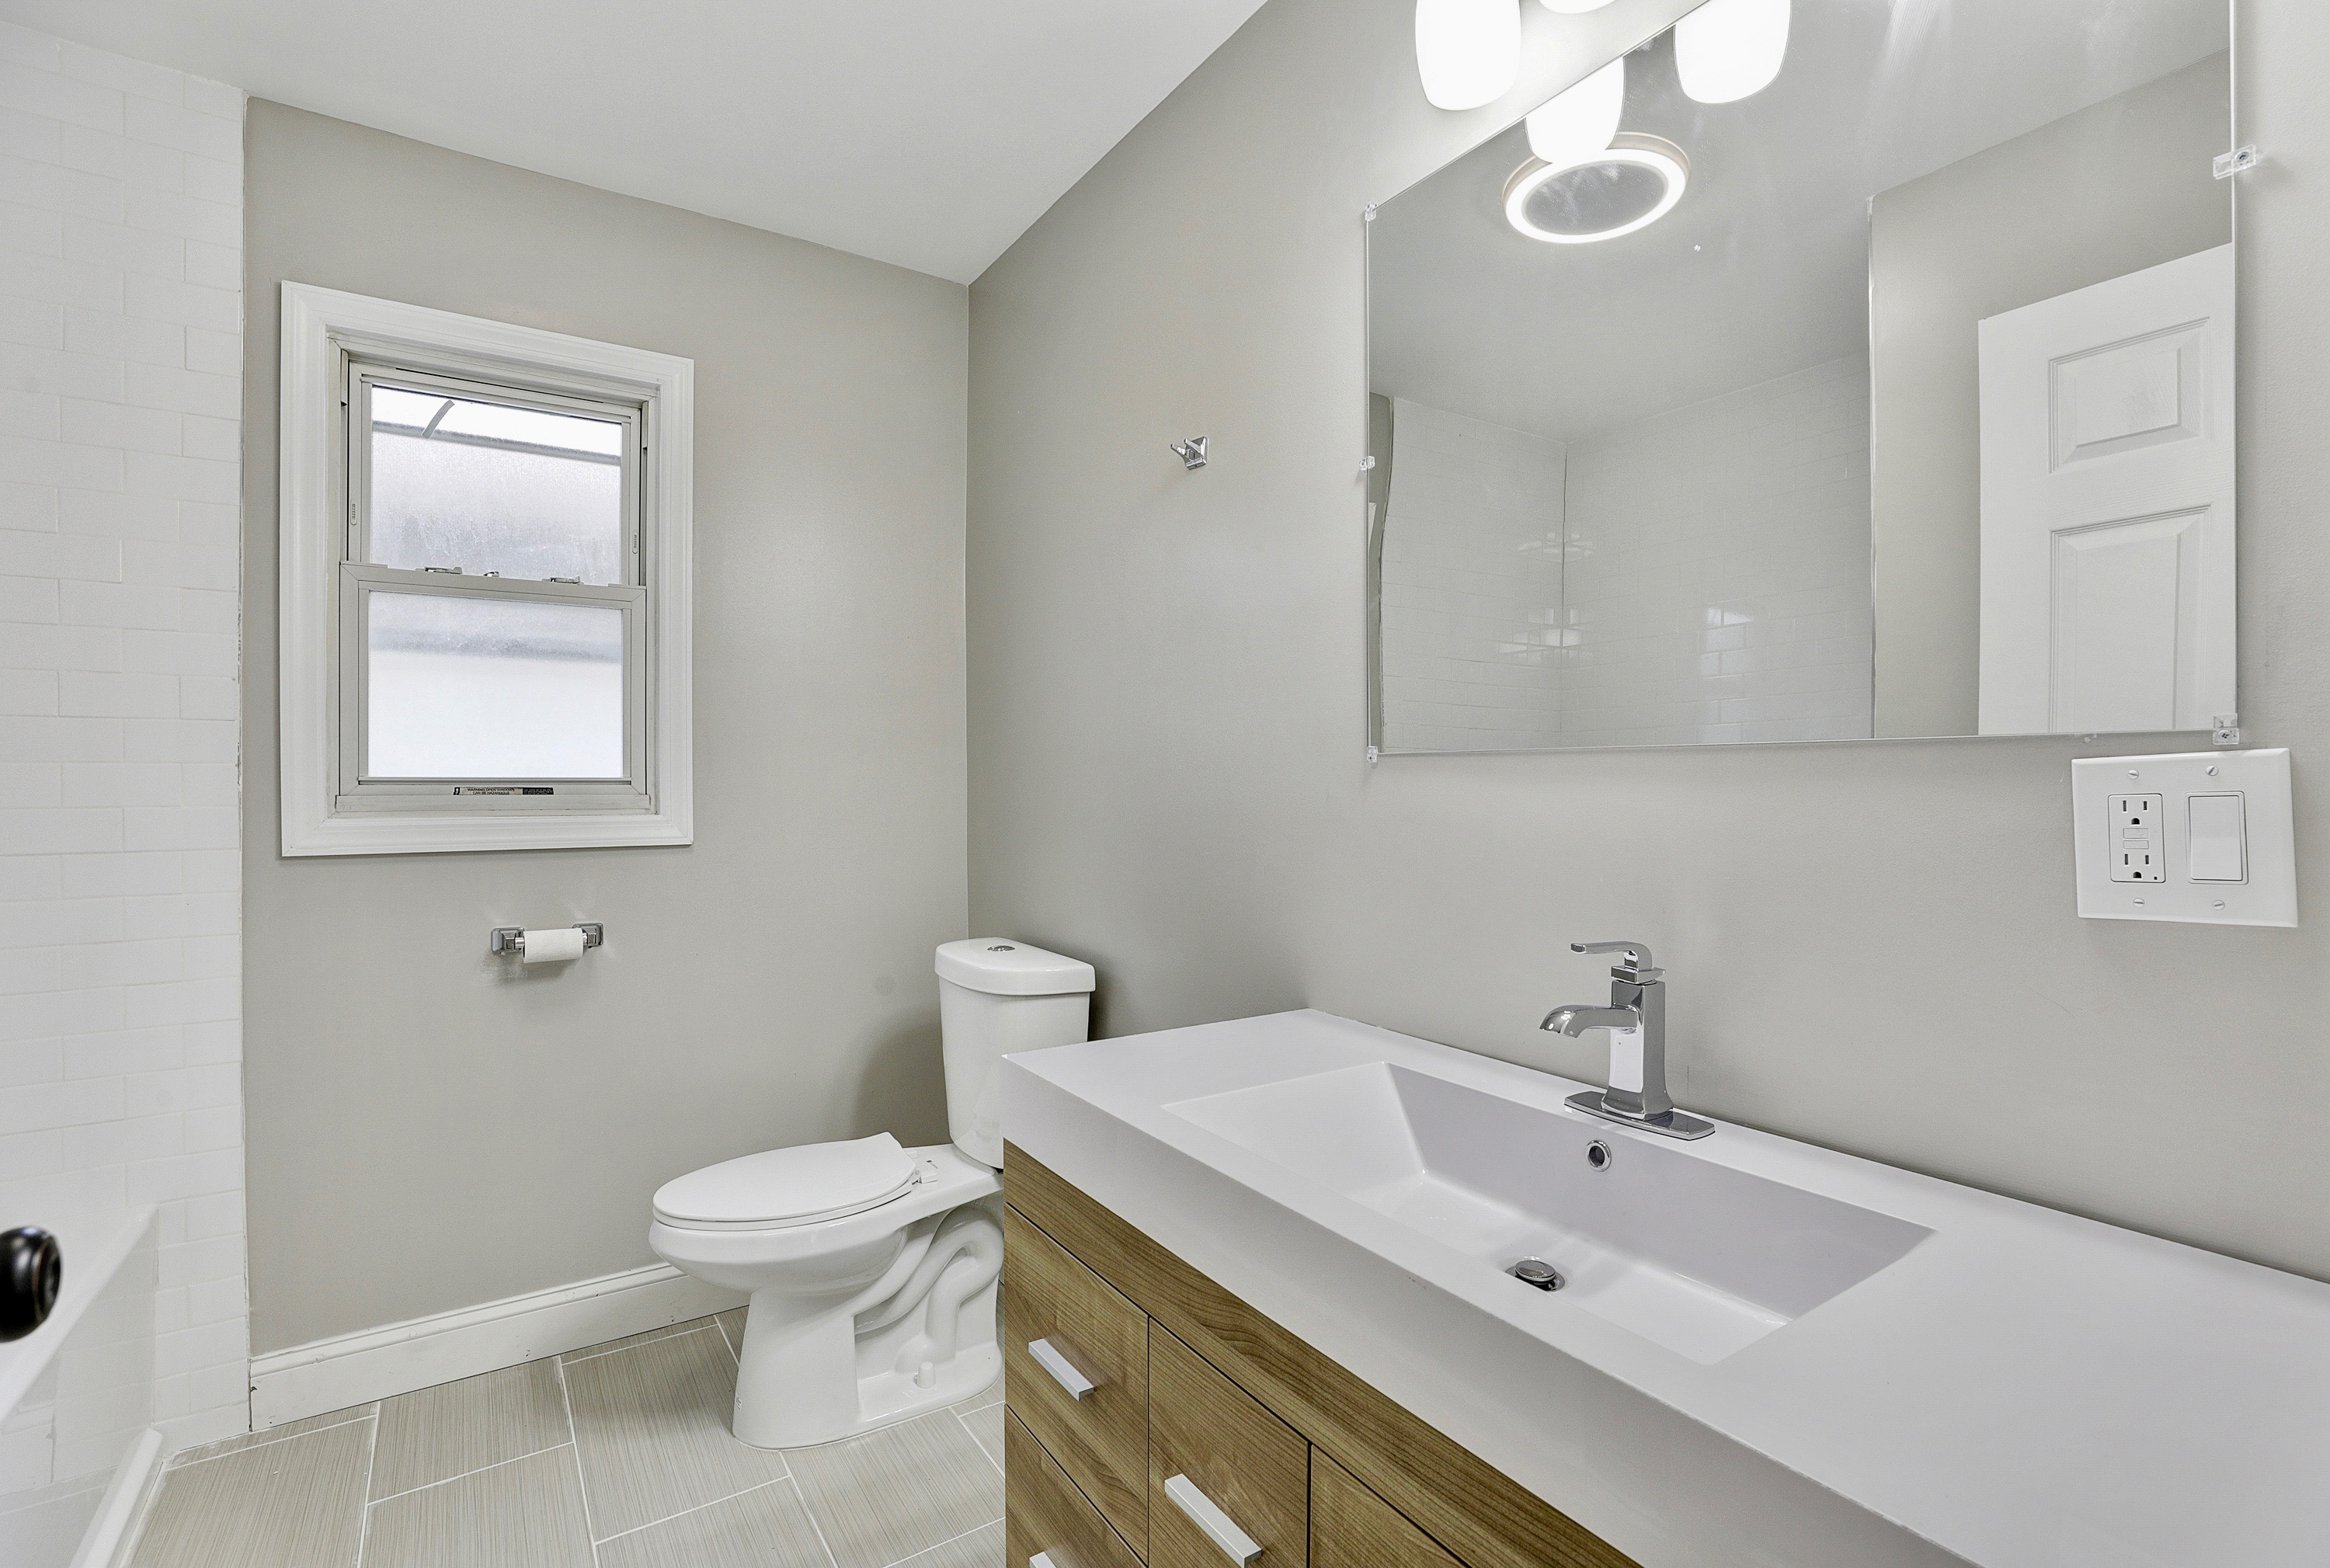 bathroom after fix and flip loan in NJ